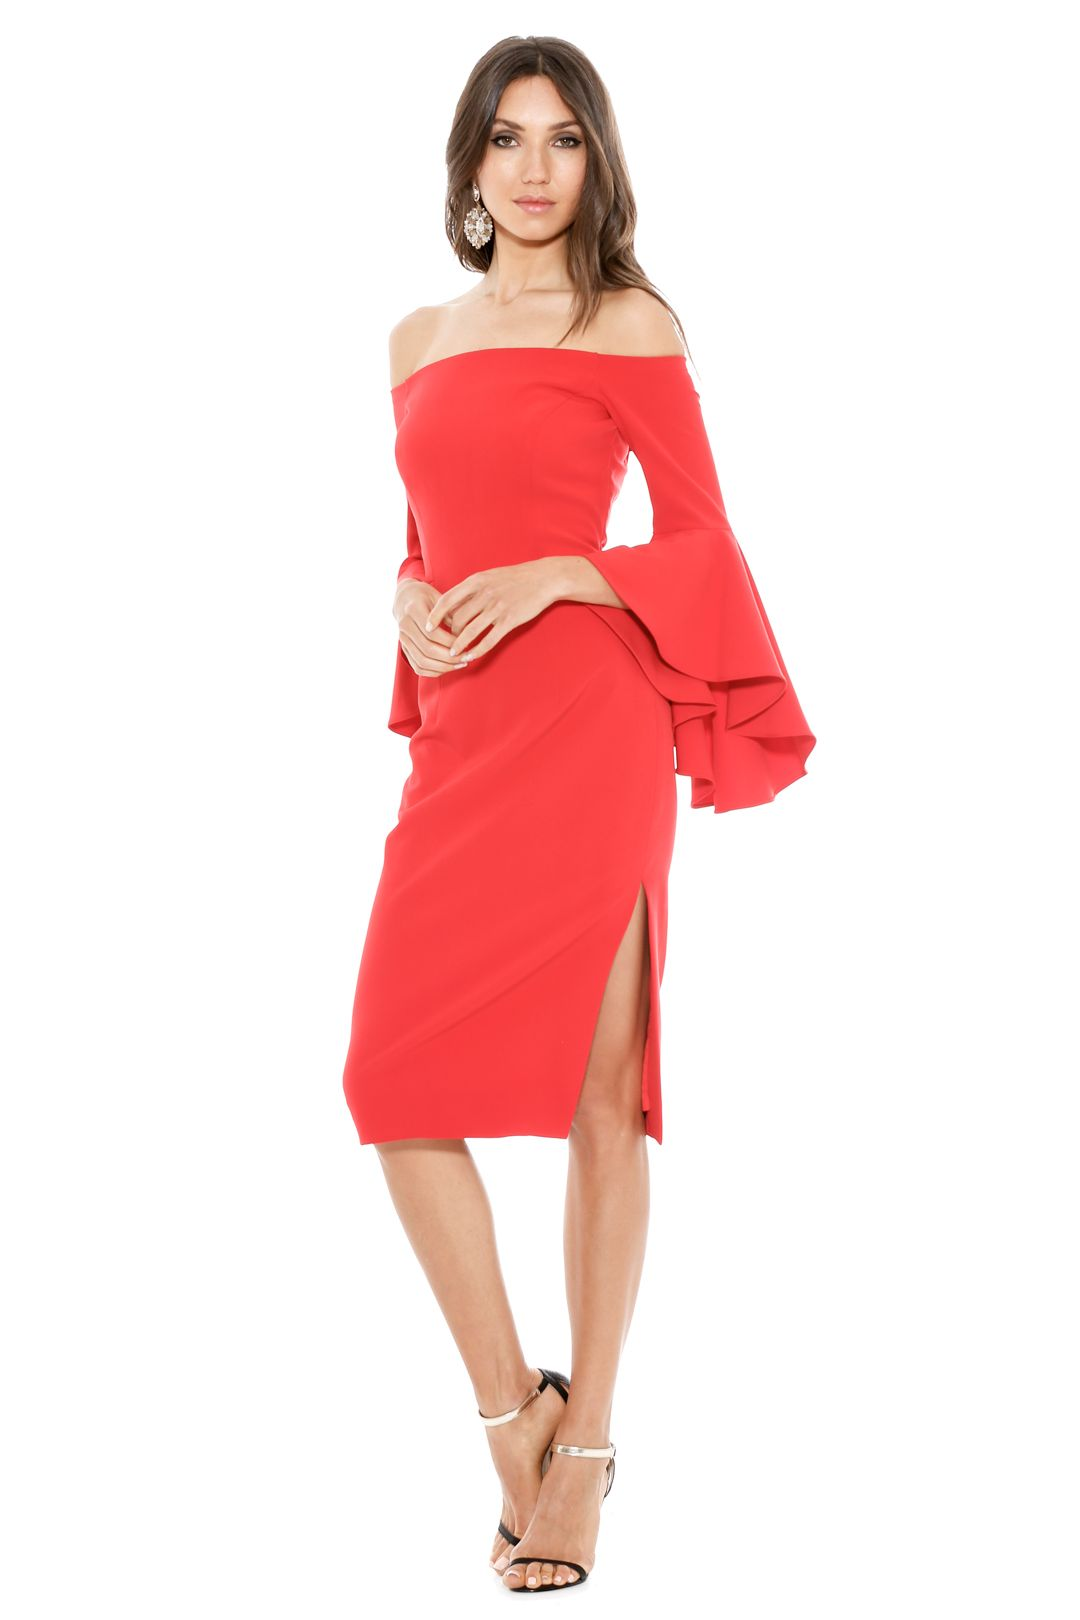 Milly - Cady Selena Slit Dress - Tomato - Front